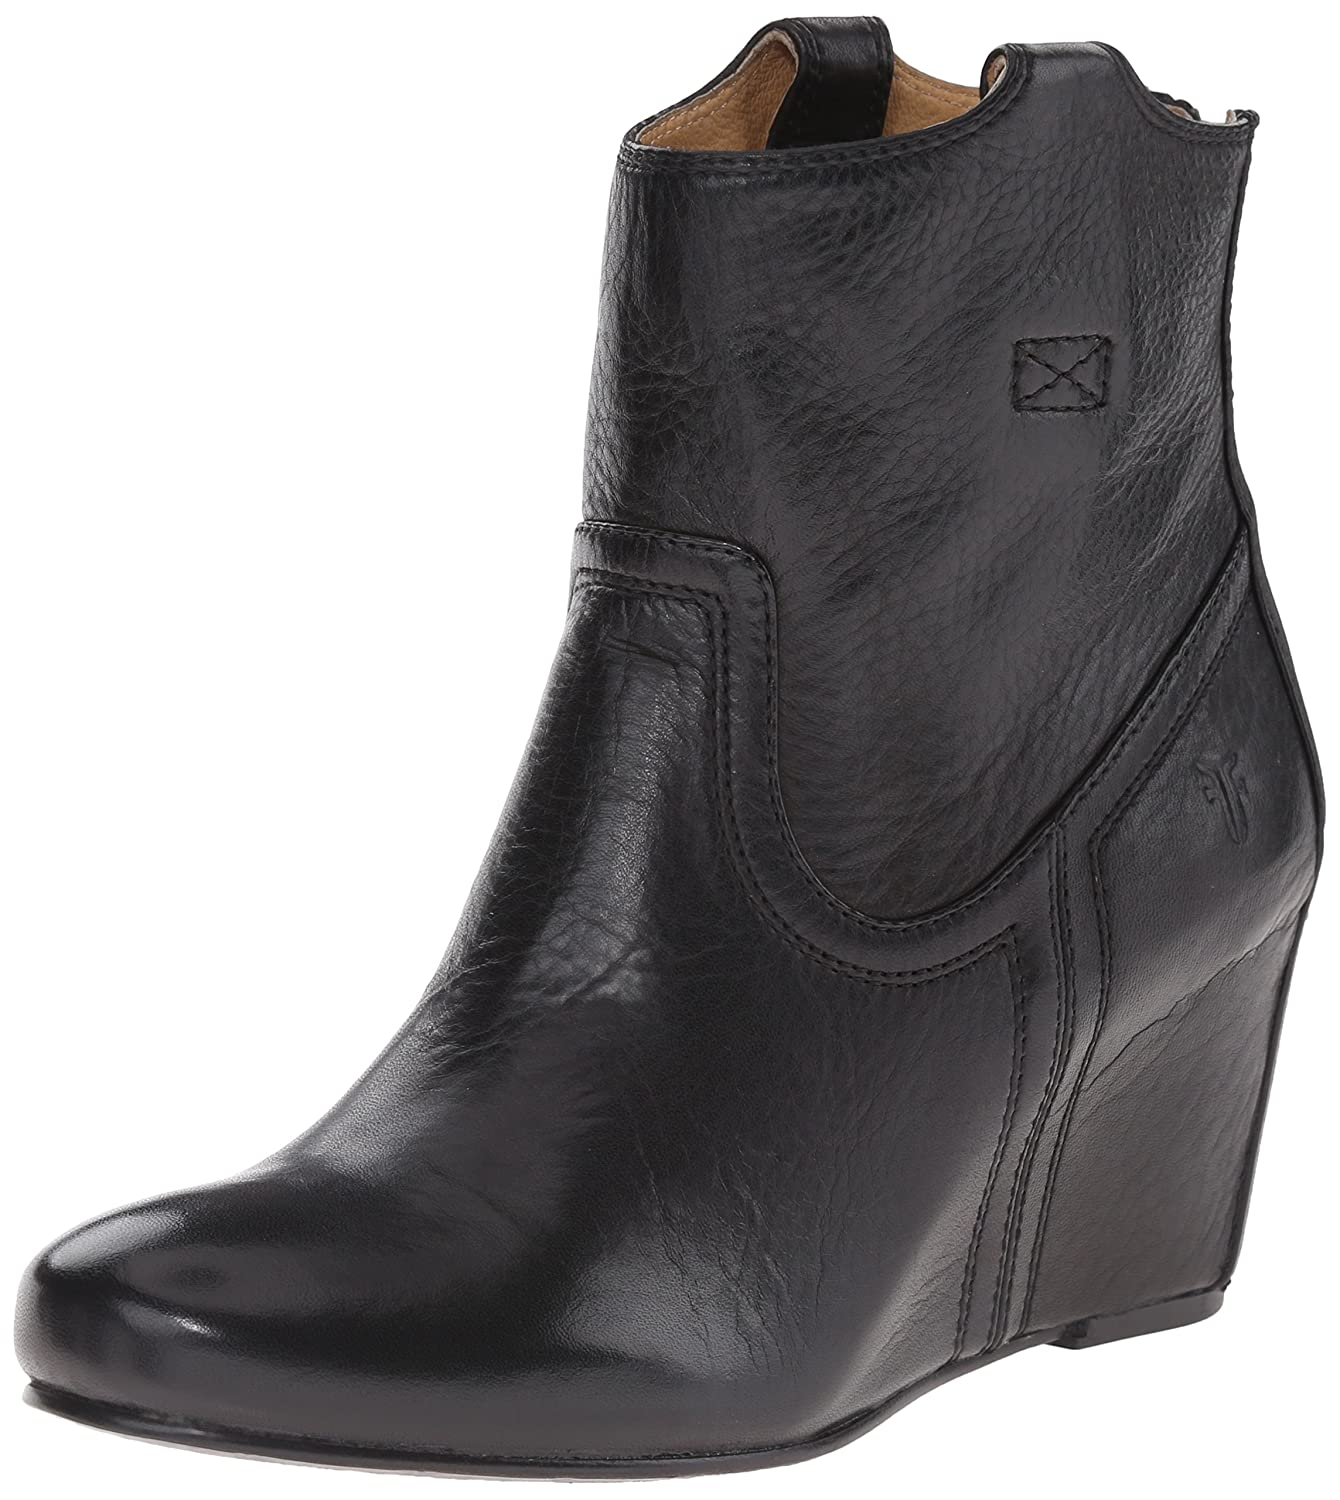 FRYE Women's Carson Wedge Bootie B00SSQIS9S 7.5 B(M) US|Black